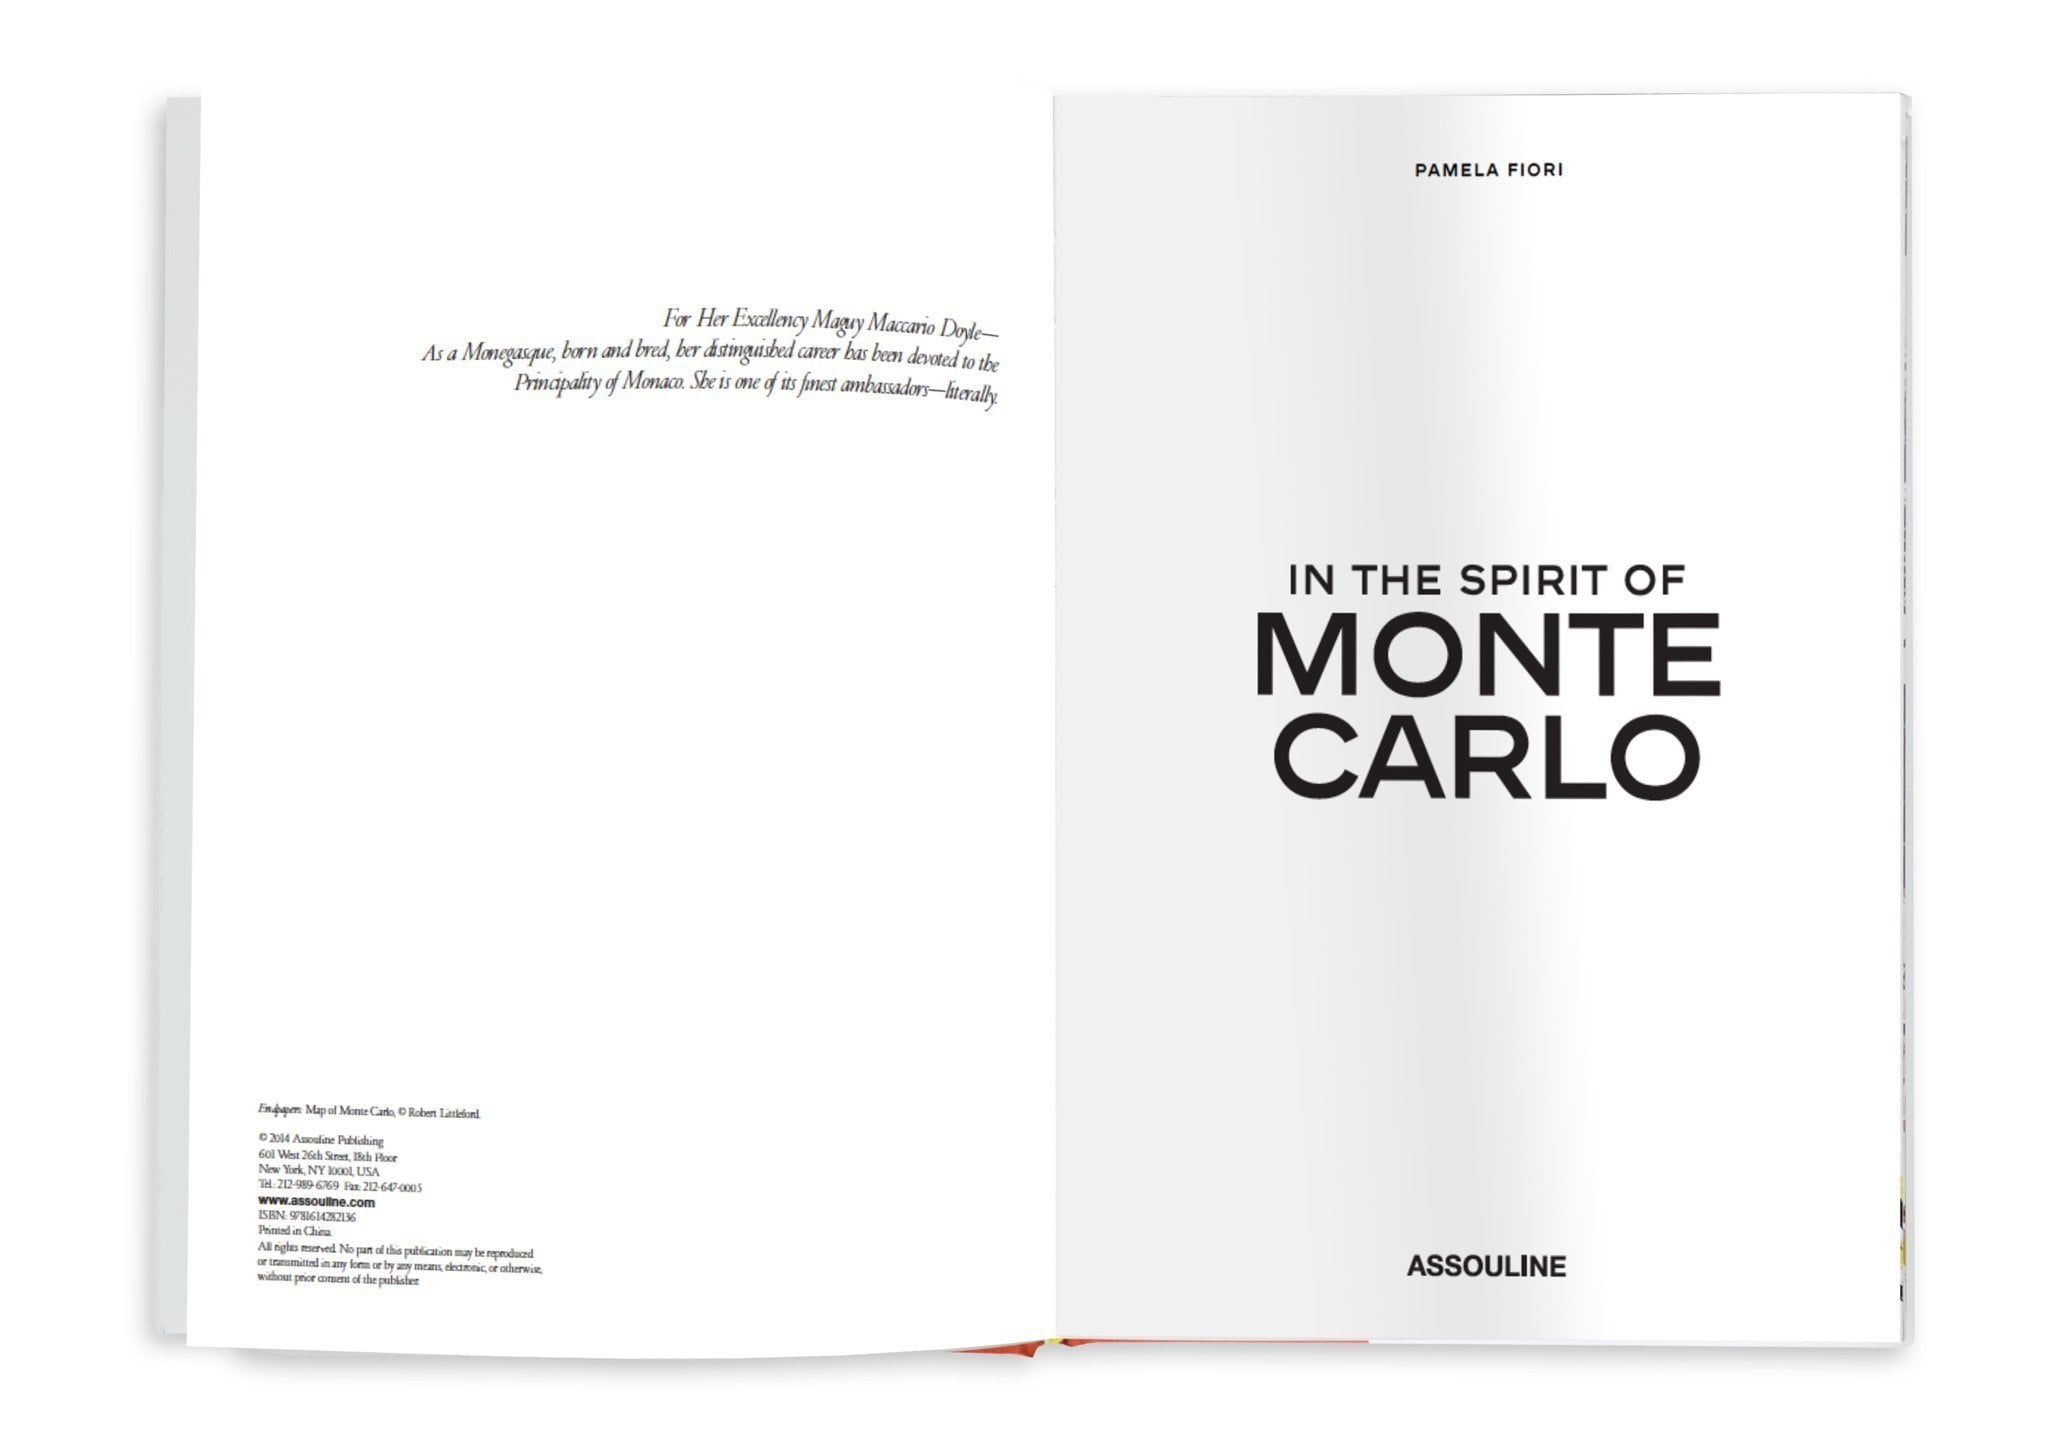 In the Spirit of Monte Carlo - Assouline